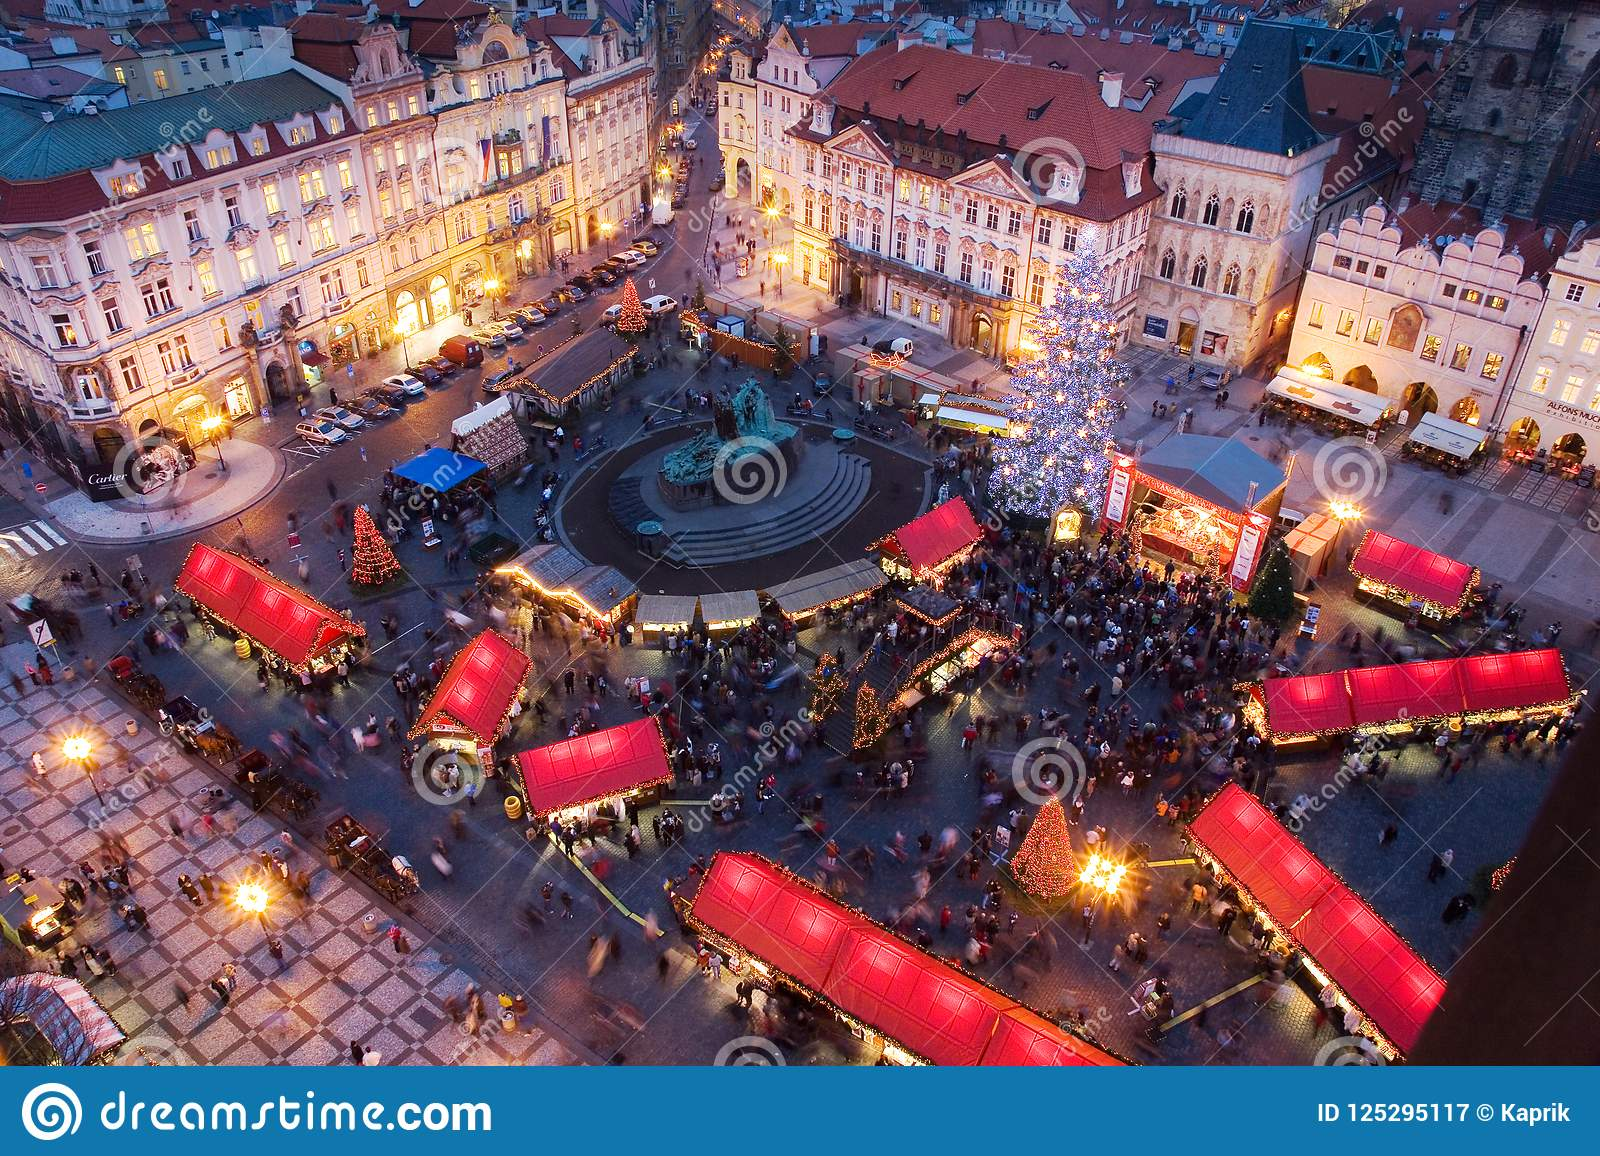 Prague Christmas Market.Prague Christmas Market On Old Town Square With Gothic Tyne